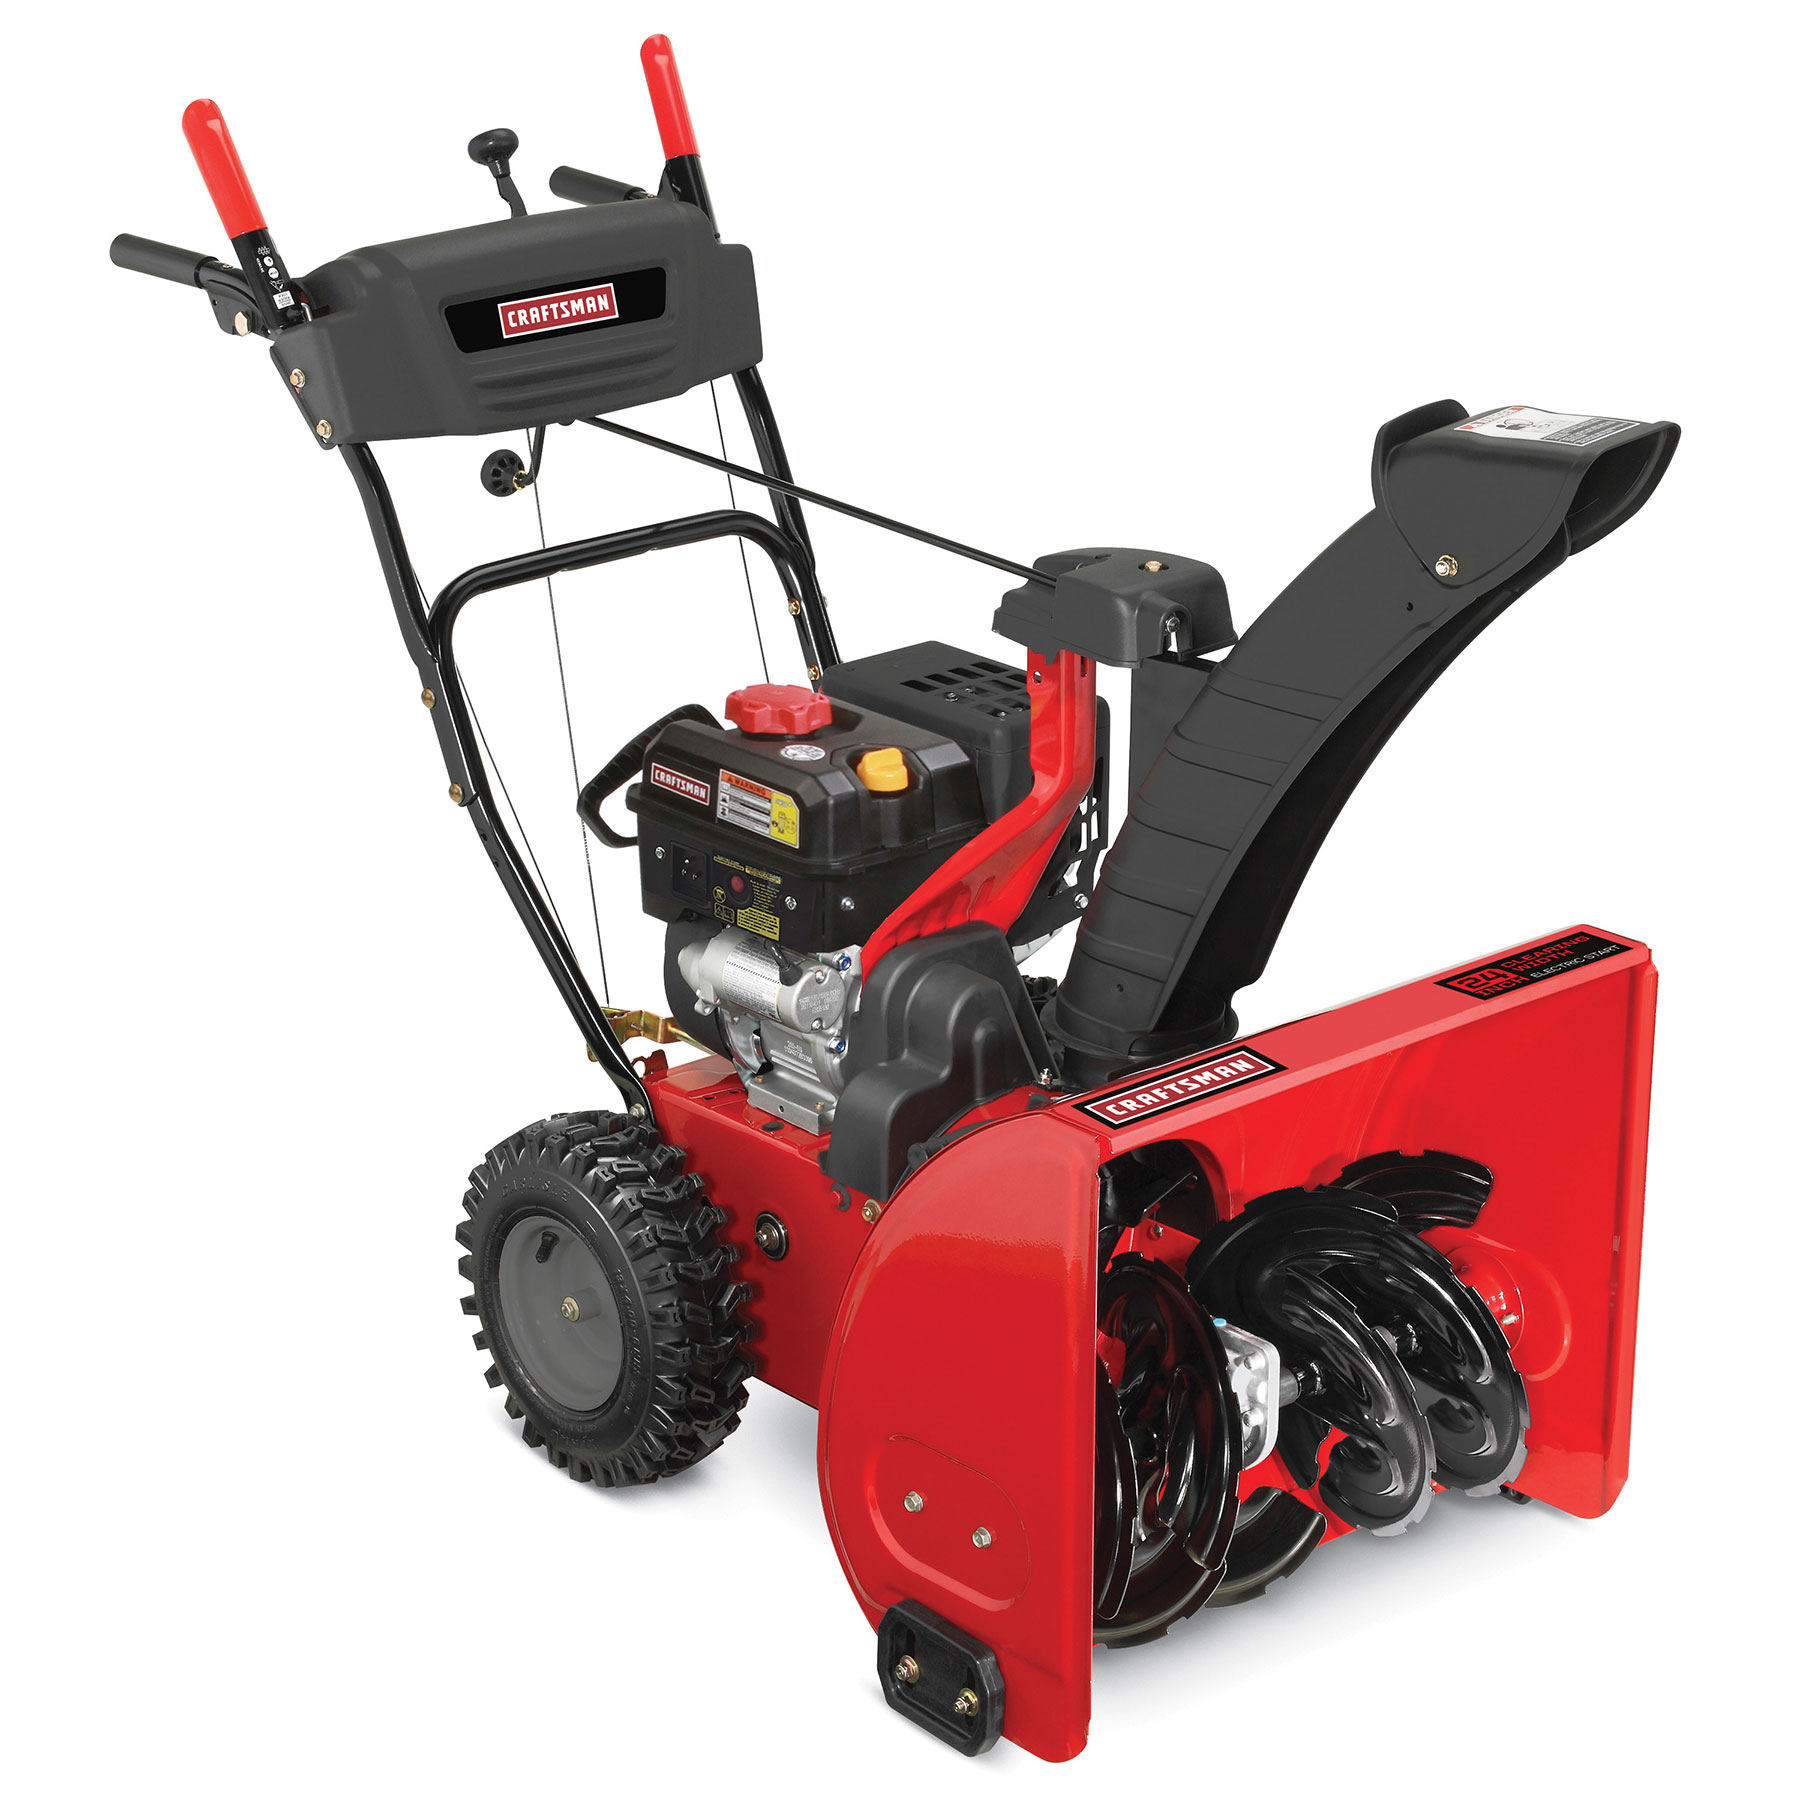 hight resolution of where can i get the manual for my snow blower 88173